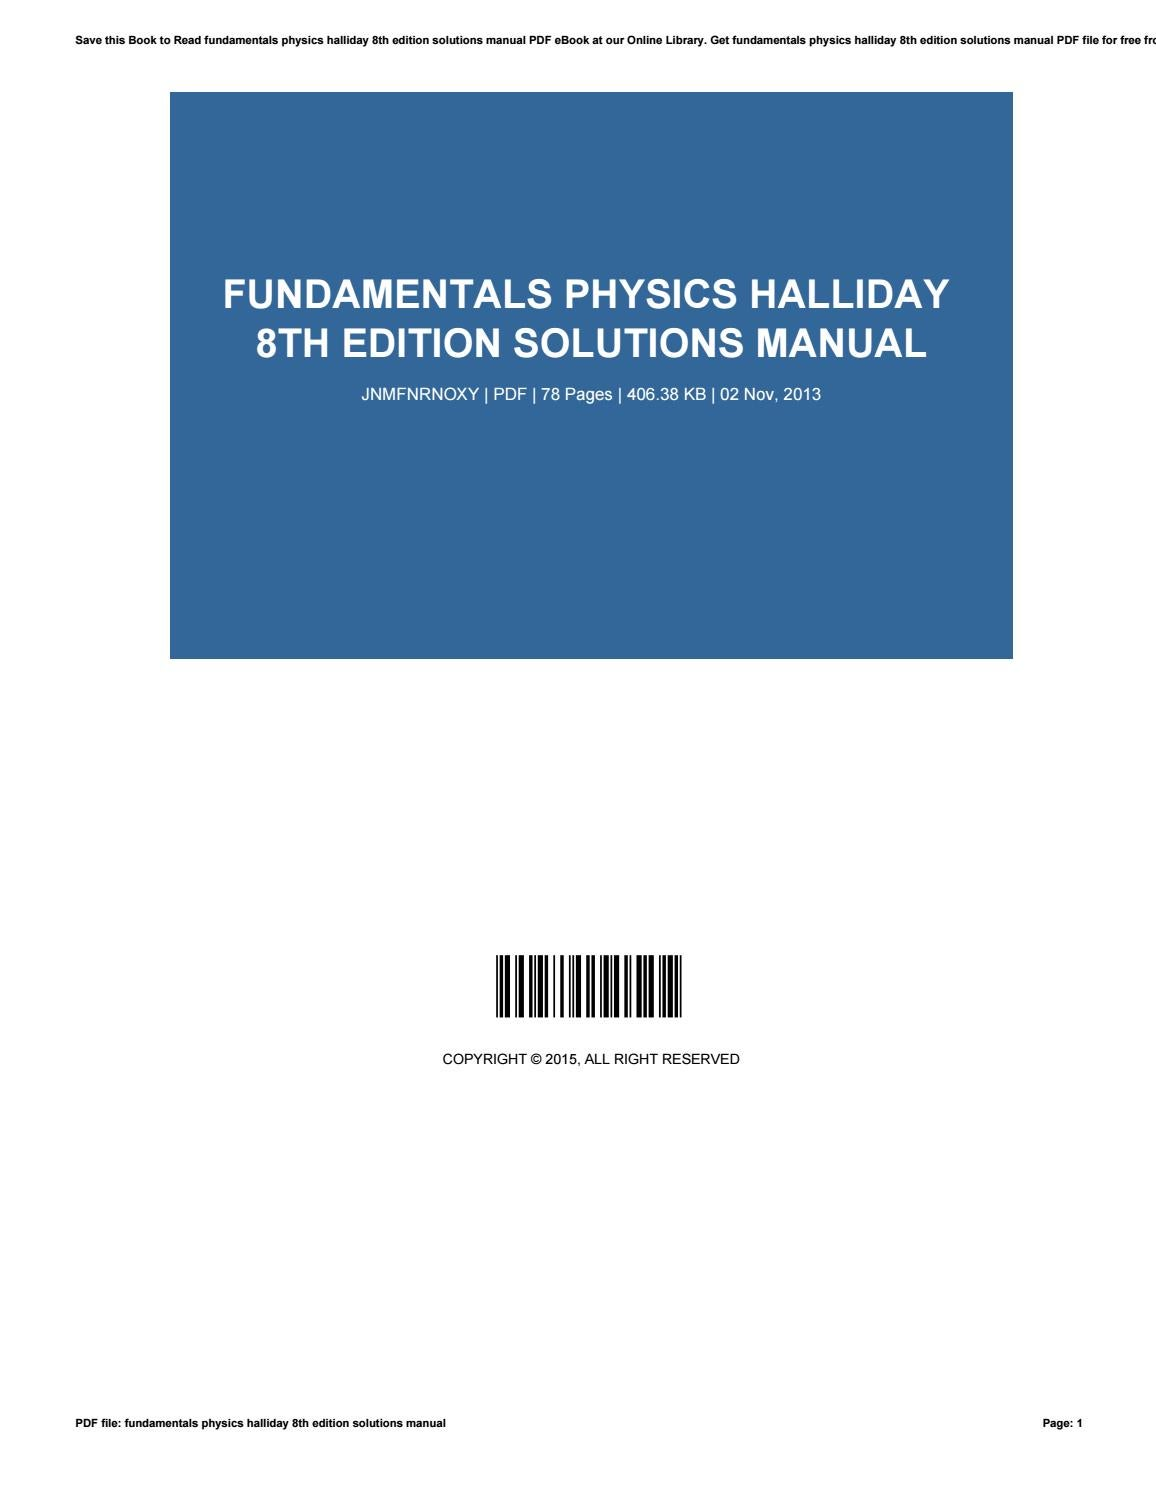 Fundamentals physics halliday 8th edition solutions manual by  ErnestSpradlin4346 - issuu